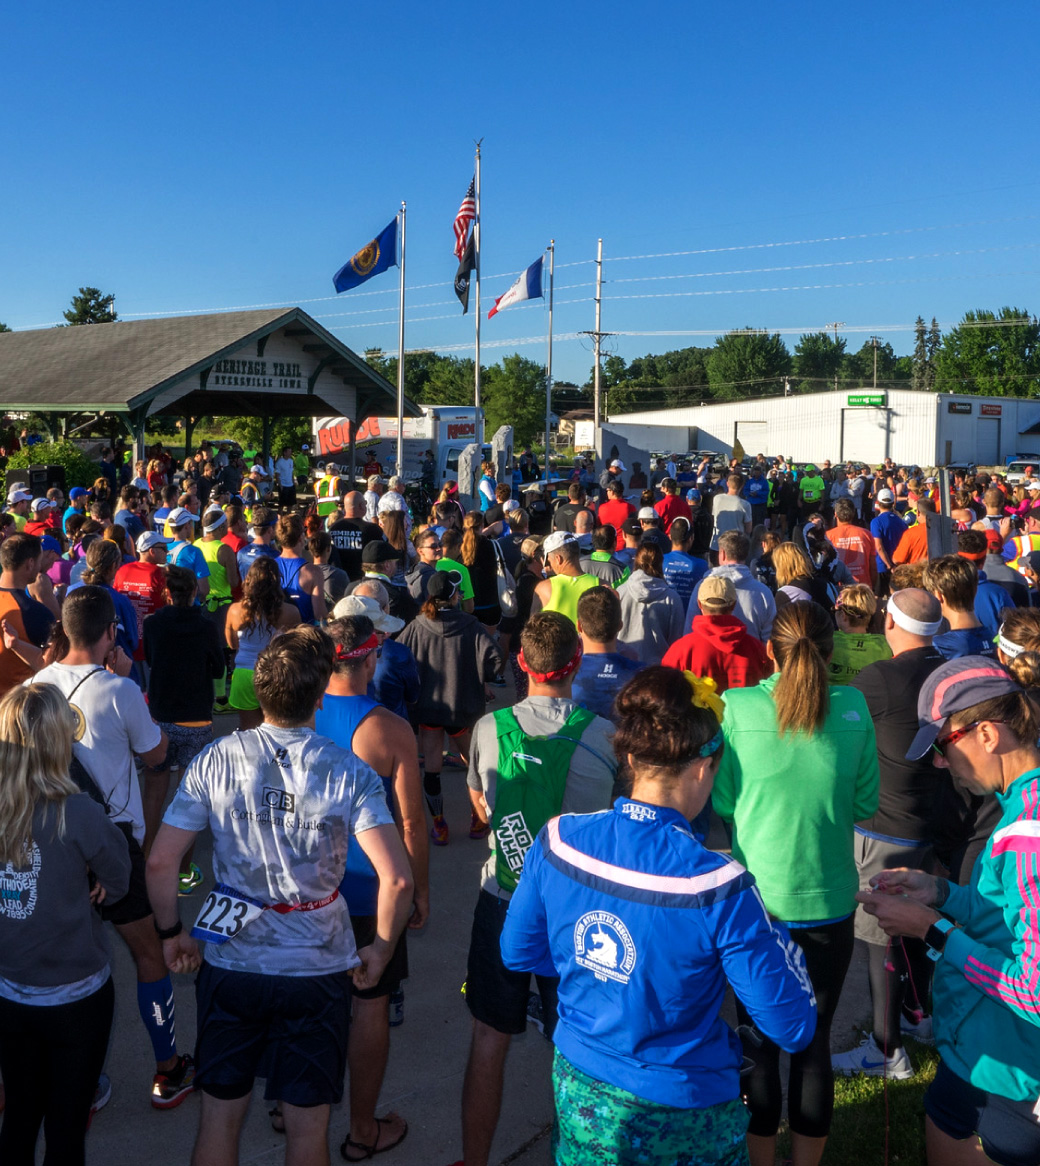 Runners at the start of Run4Troops event